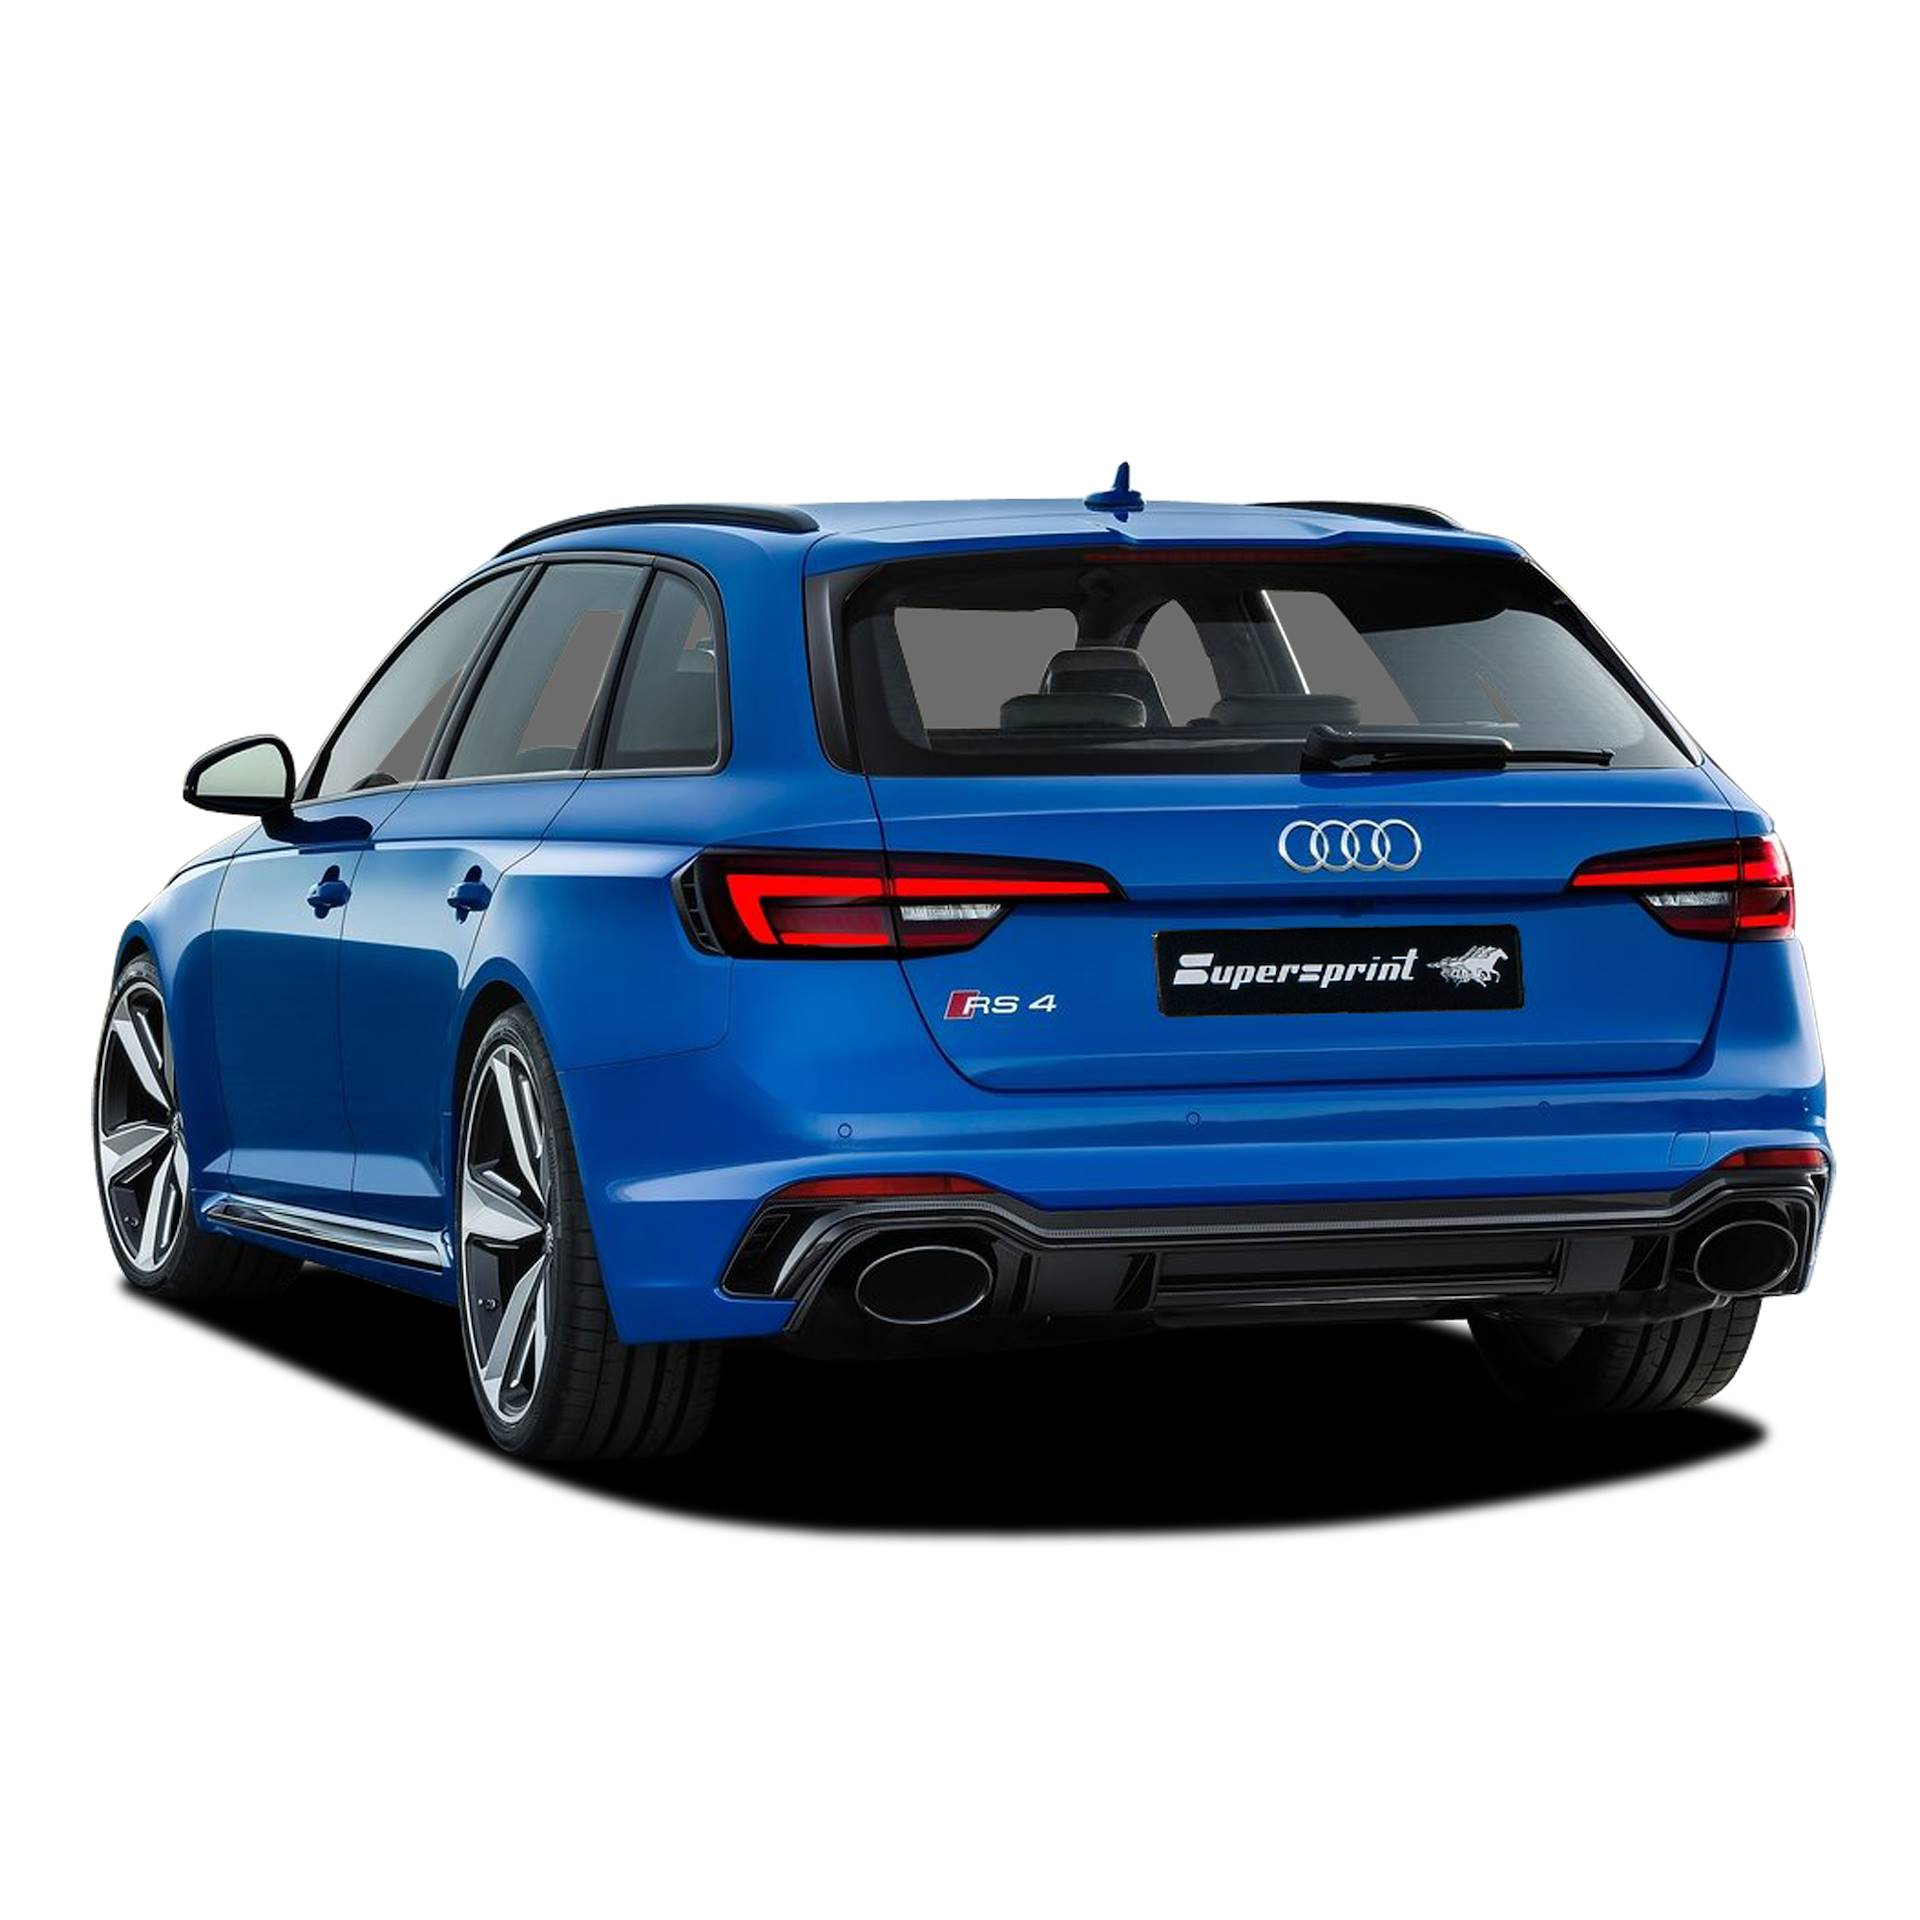 New Supersprint Exhaust with valves for AUDI RS4 / RS5 B9